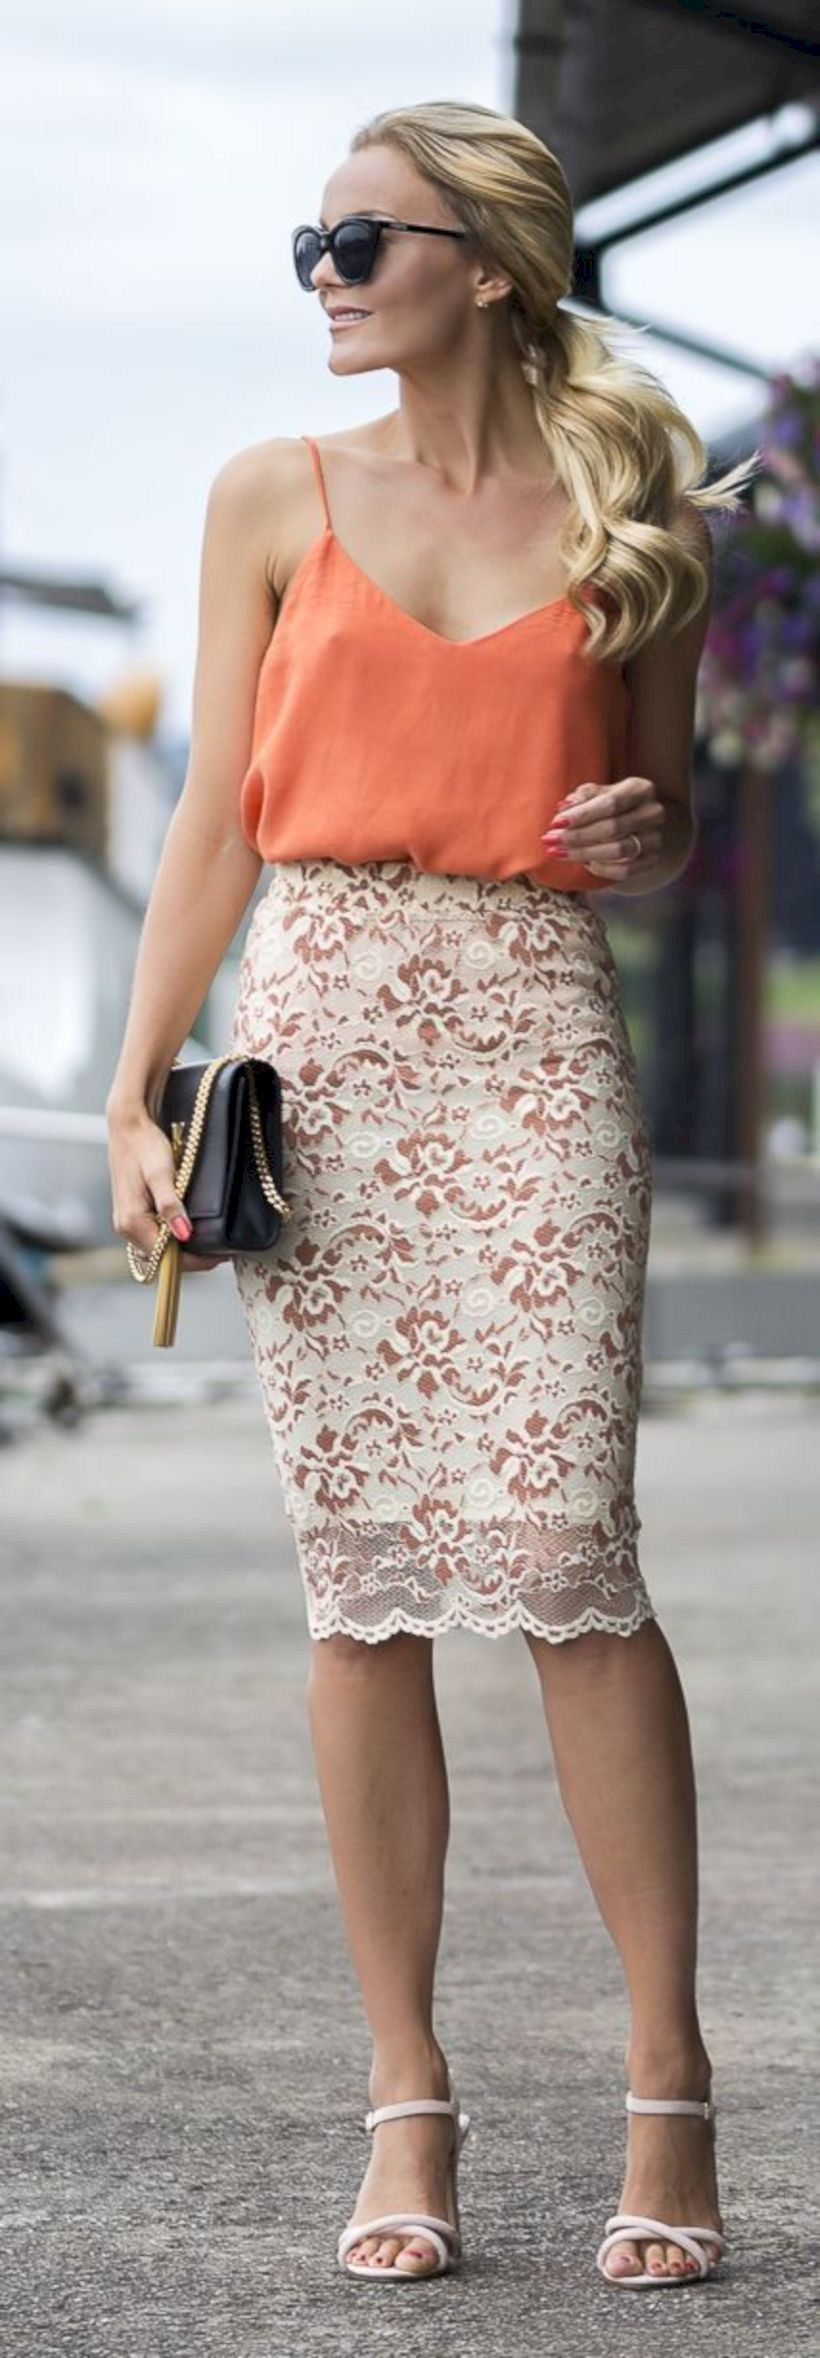 059867d140 Cute Skirts for Weddings | Dress for the Wedding